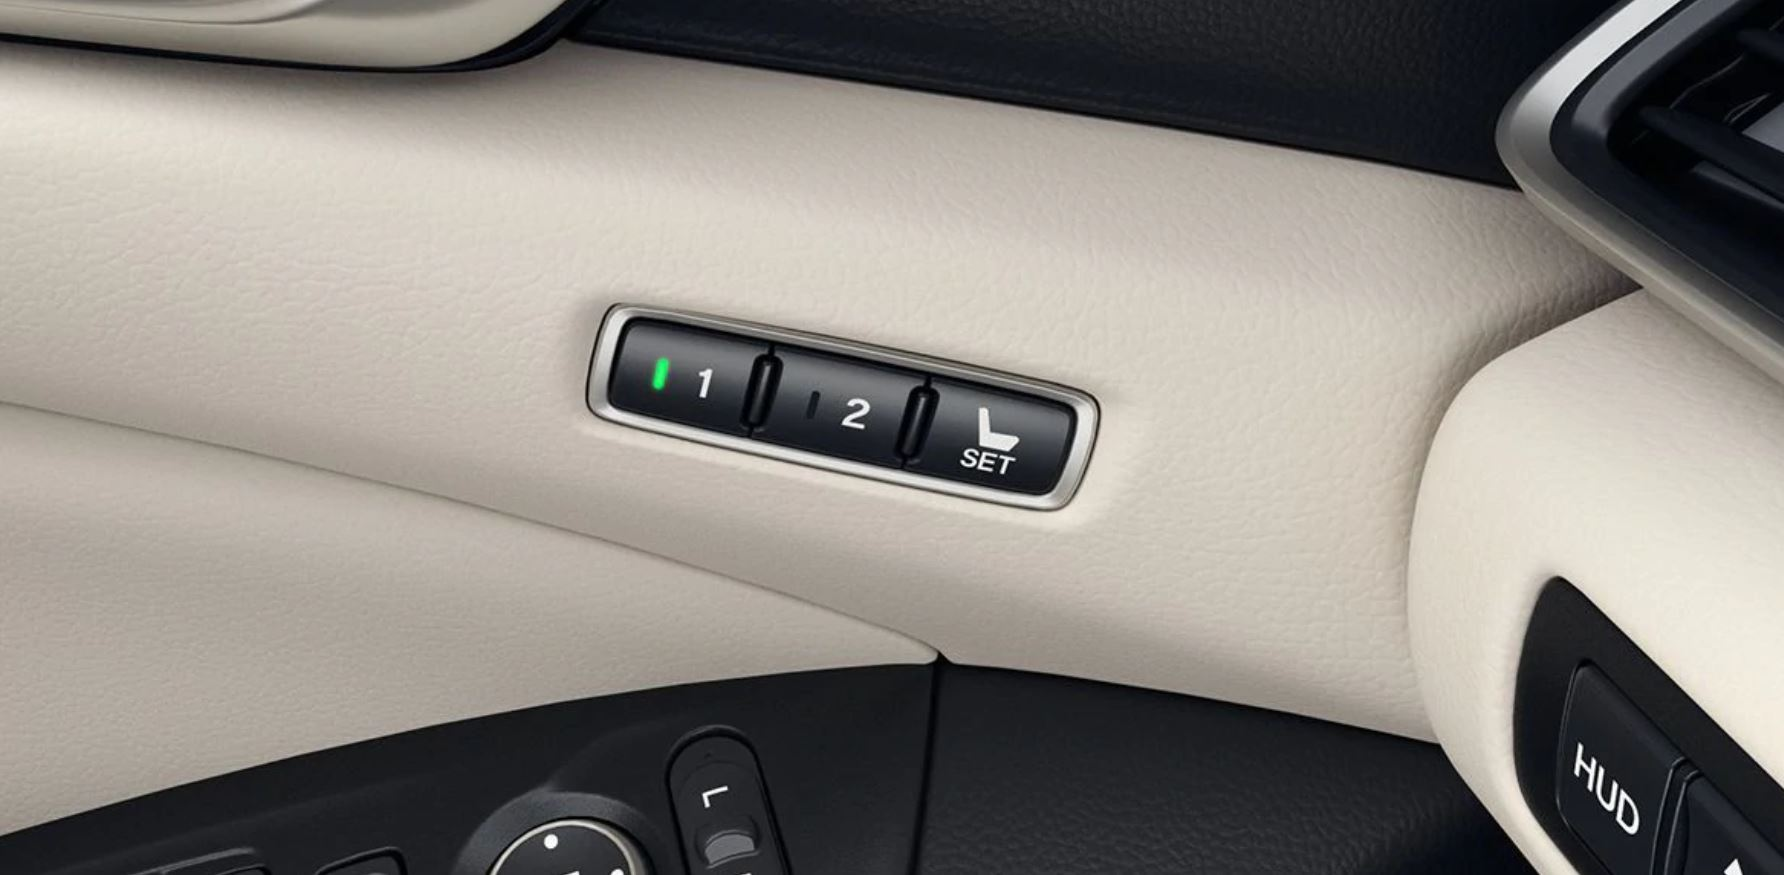 Driver Seat Memory System in the 2020 Accord